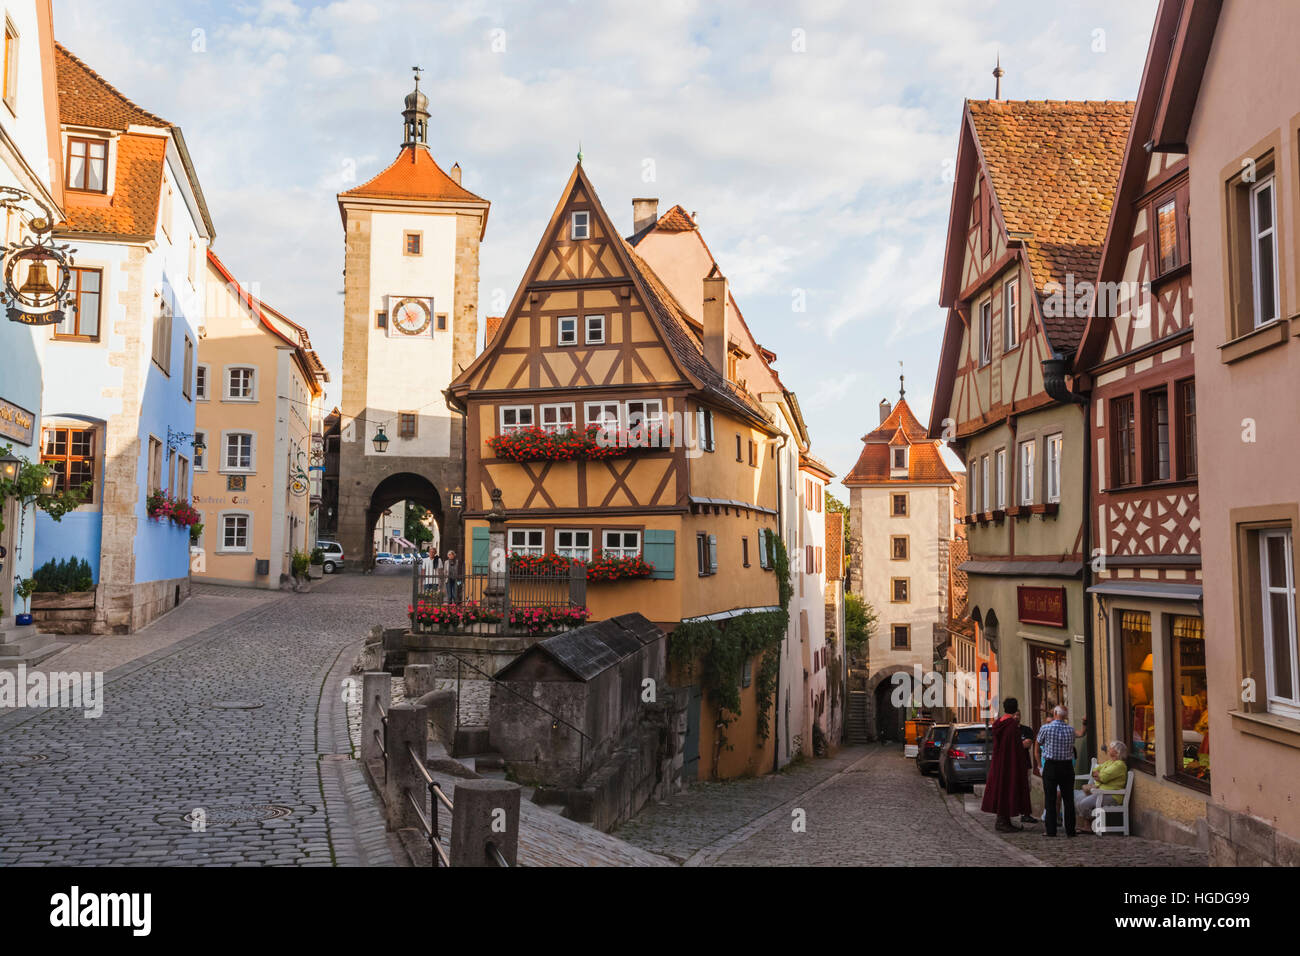 deutschland bayern romantische stra e rothenburg ob der tauber pl nlein und siebers turm. Black Bedroom Furniture Sets. Home Design Ideas